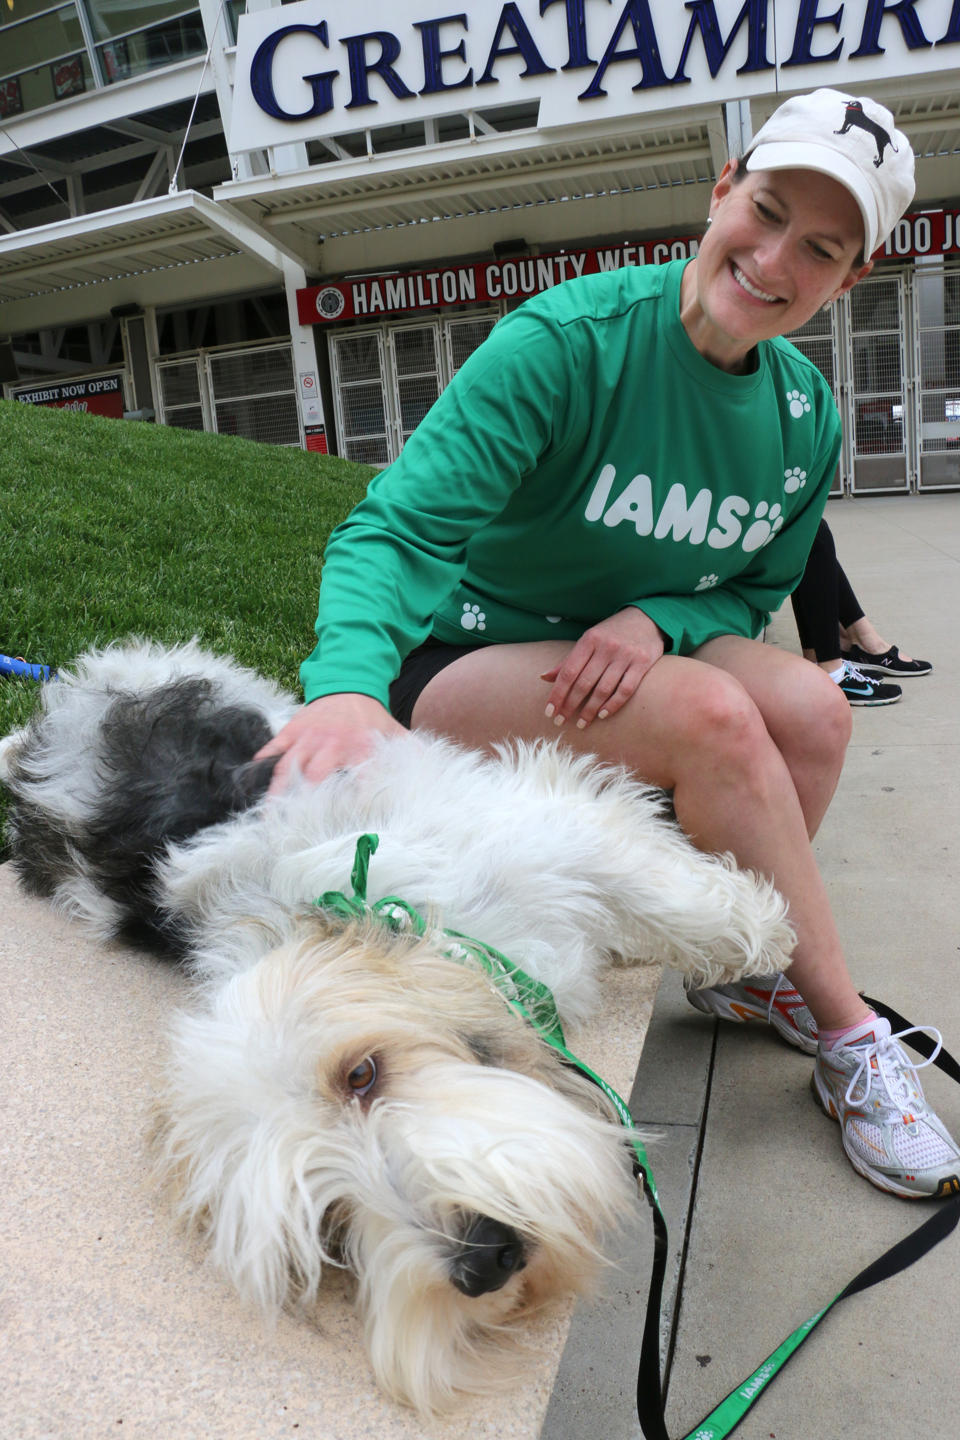 Meredith Leslie, of P&G, pets Pawl Griffin, IAMS VP of Canine Communications, as they get ready to run the IAMS Flying Fur dog run in downtown Cincinnati, Sat., May 3, 2014. More than 500 dogs and owners ran in the two-mile race as part of races taking place during the Flying Pig Marathon weekend events. IAMS Bowls of Love will be donating a bag of pet food for each dog running in the event to the SPCA in Cincinnati. (Tom Uhlman/AP Images for IAMS)